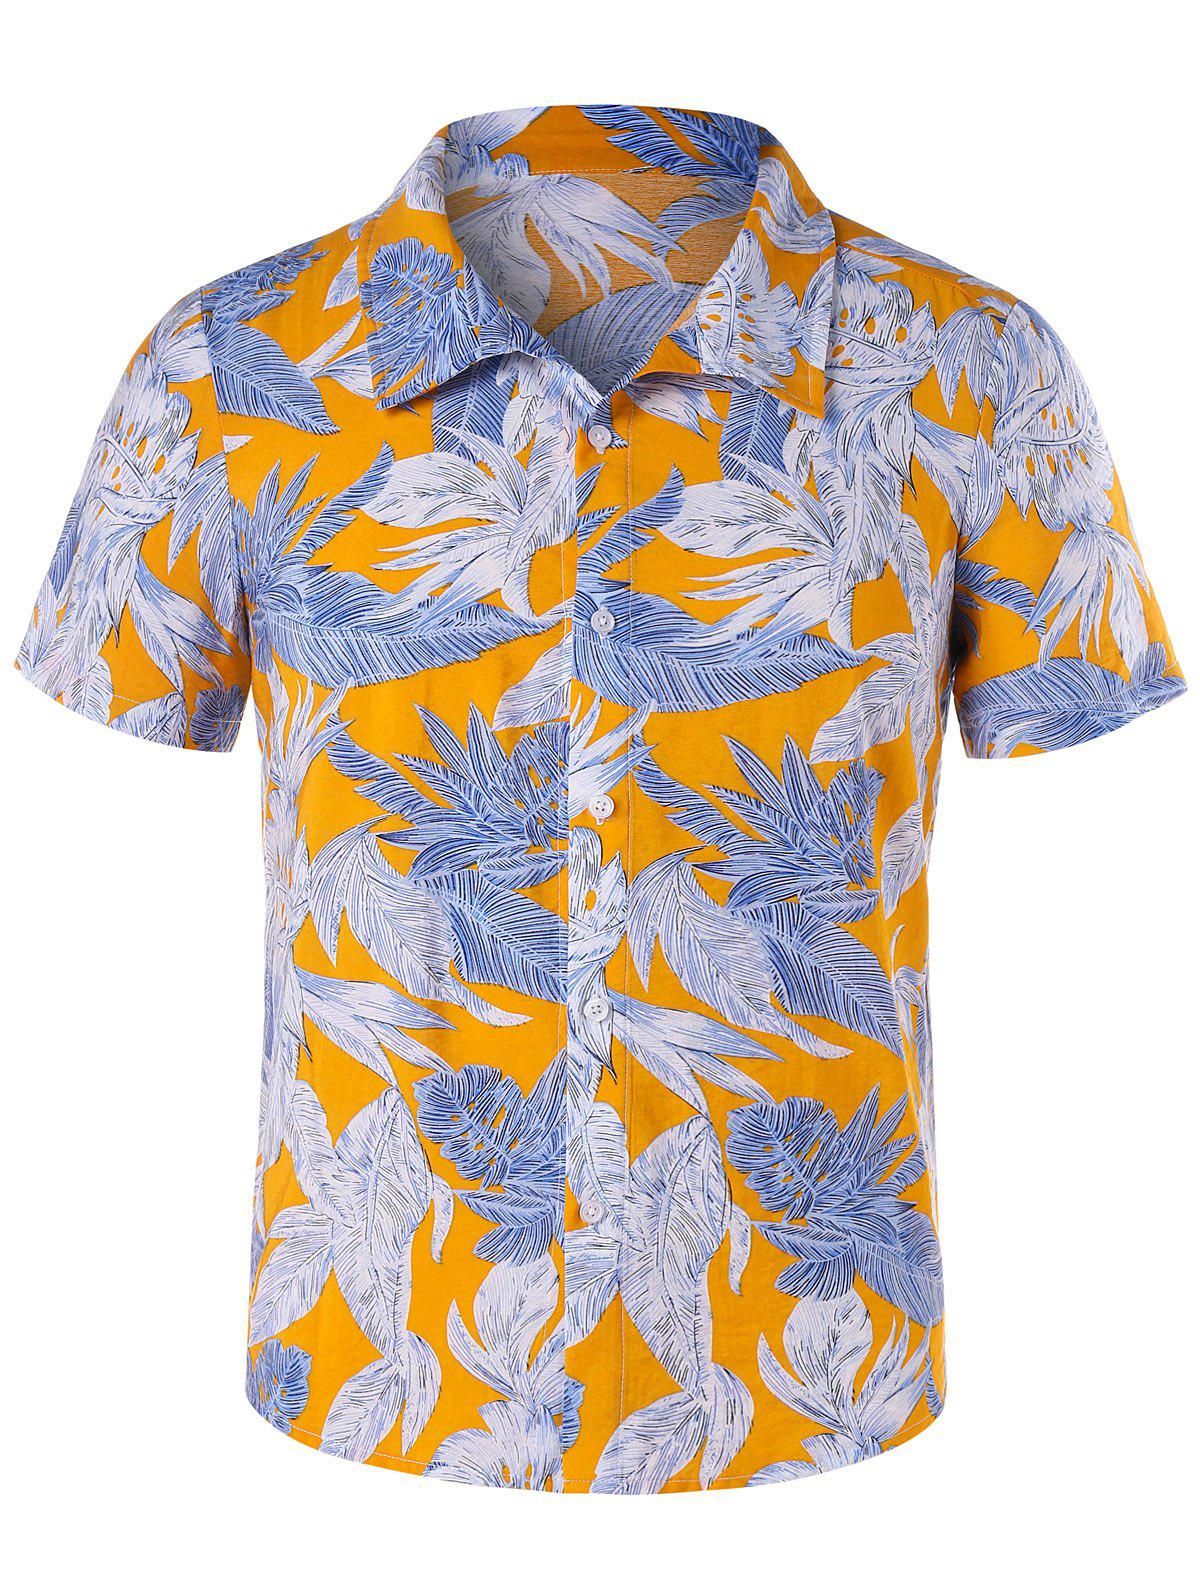 New Short Sleeve Button Up Floral Hawaii Shirt